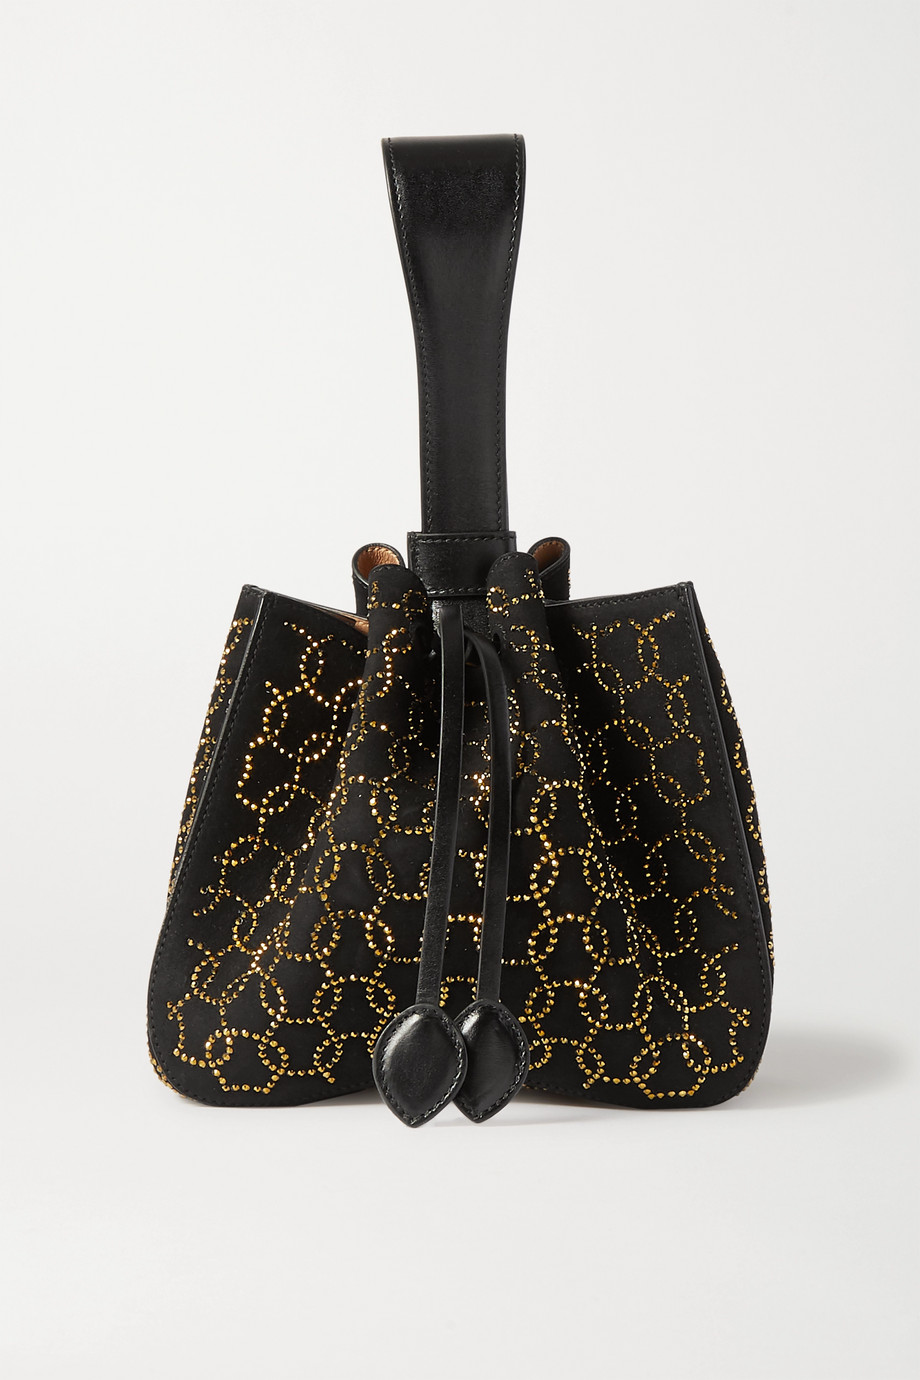 Alaïa Swarovski crystal-embellished suede and leather bucket bag